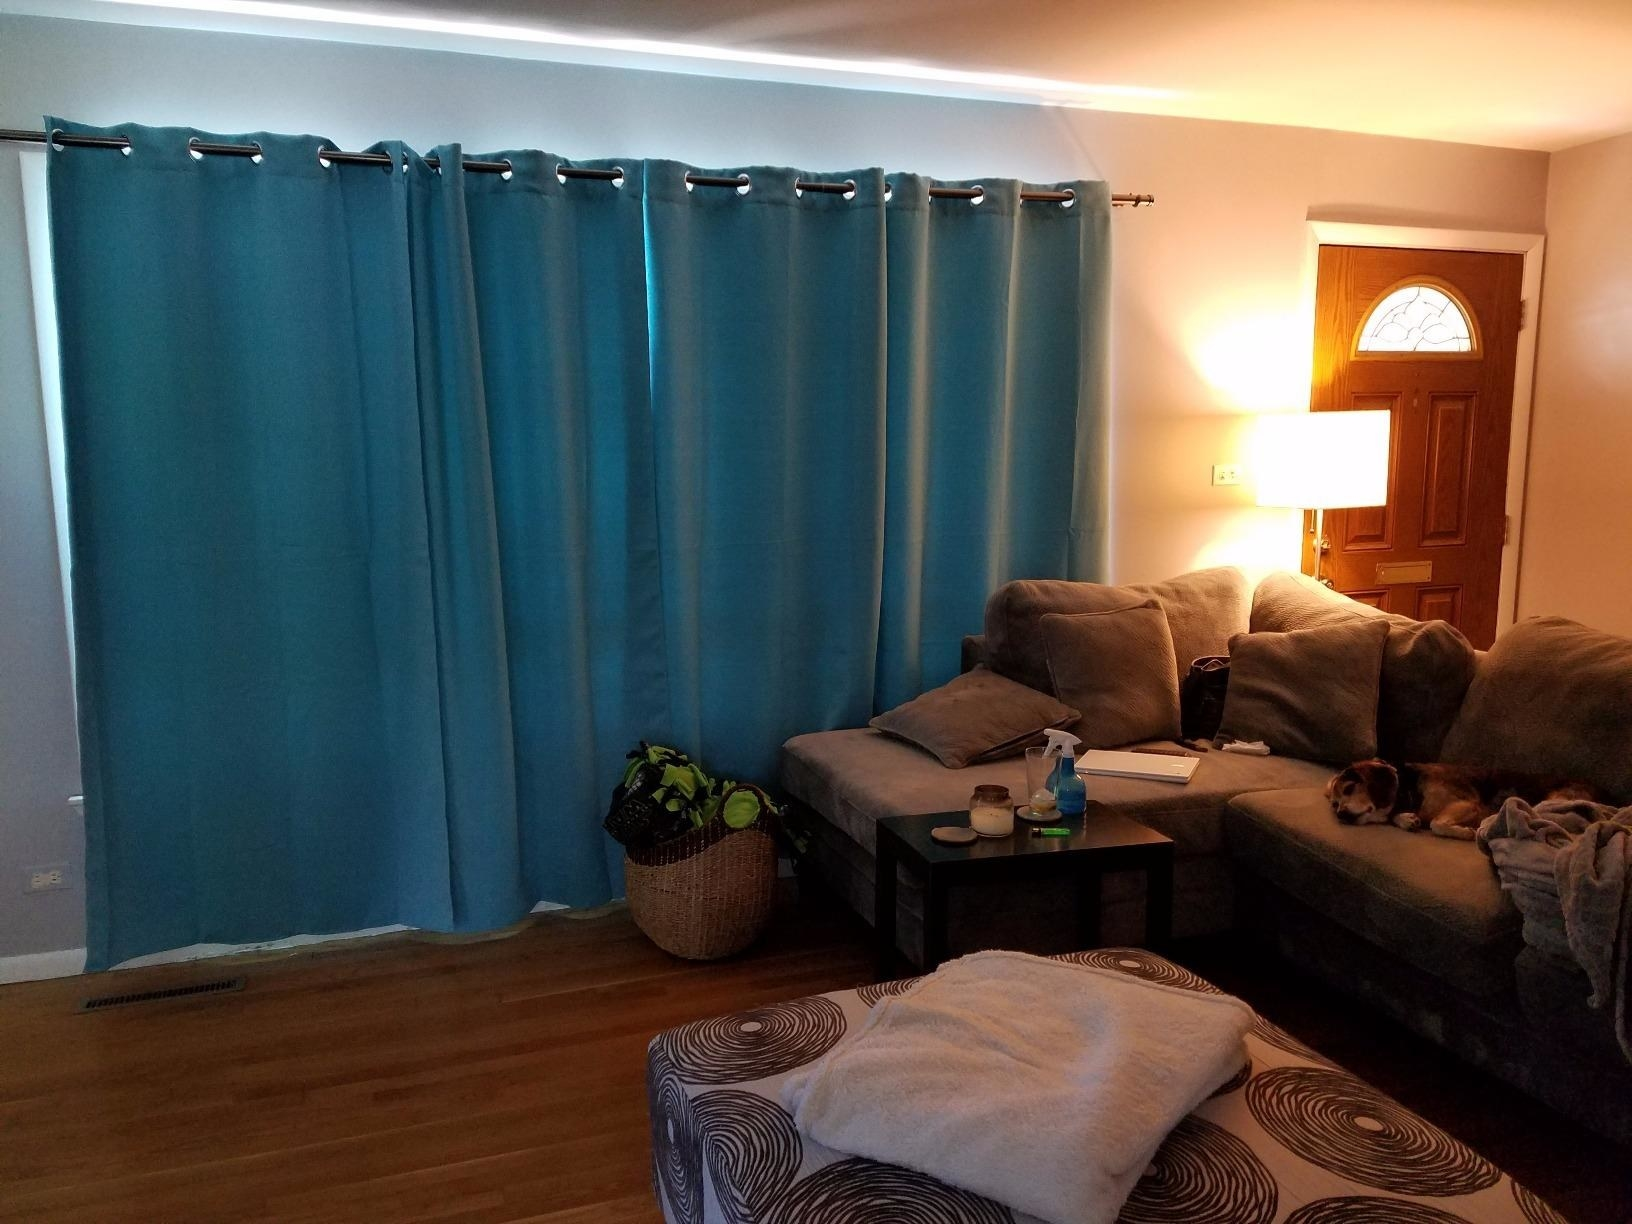 reviewer photo of blue curtains in their living room